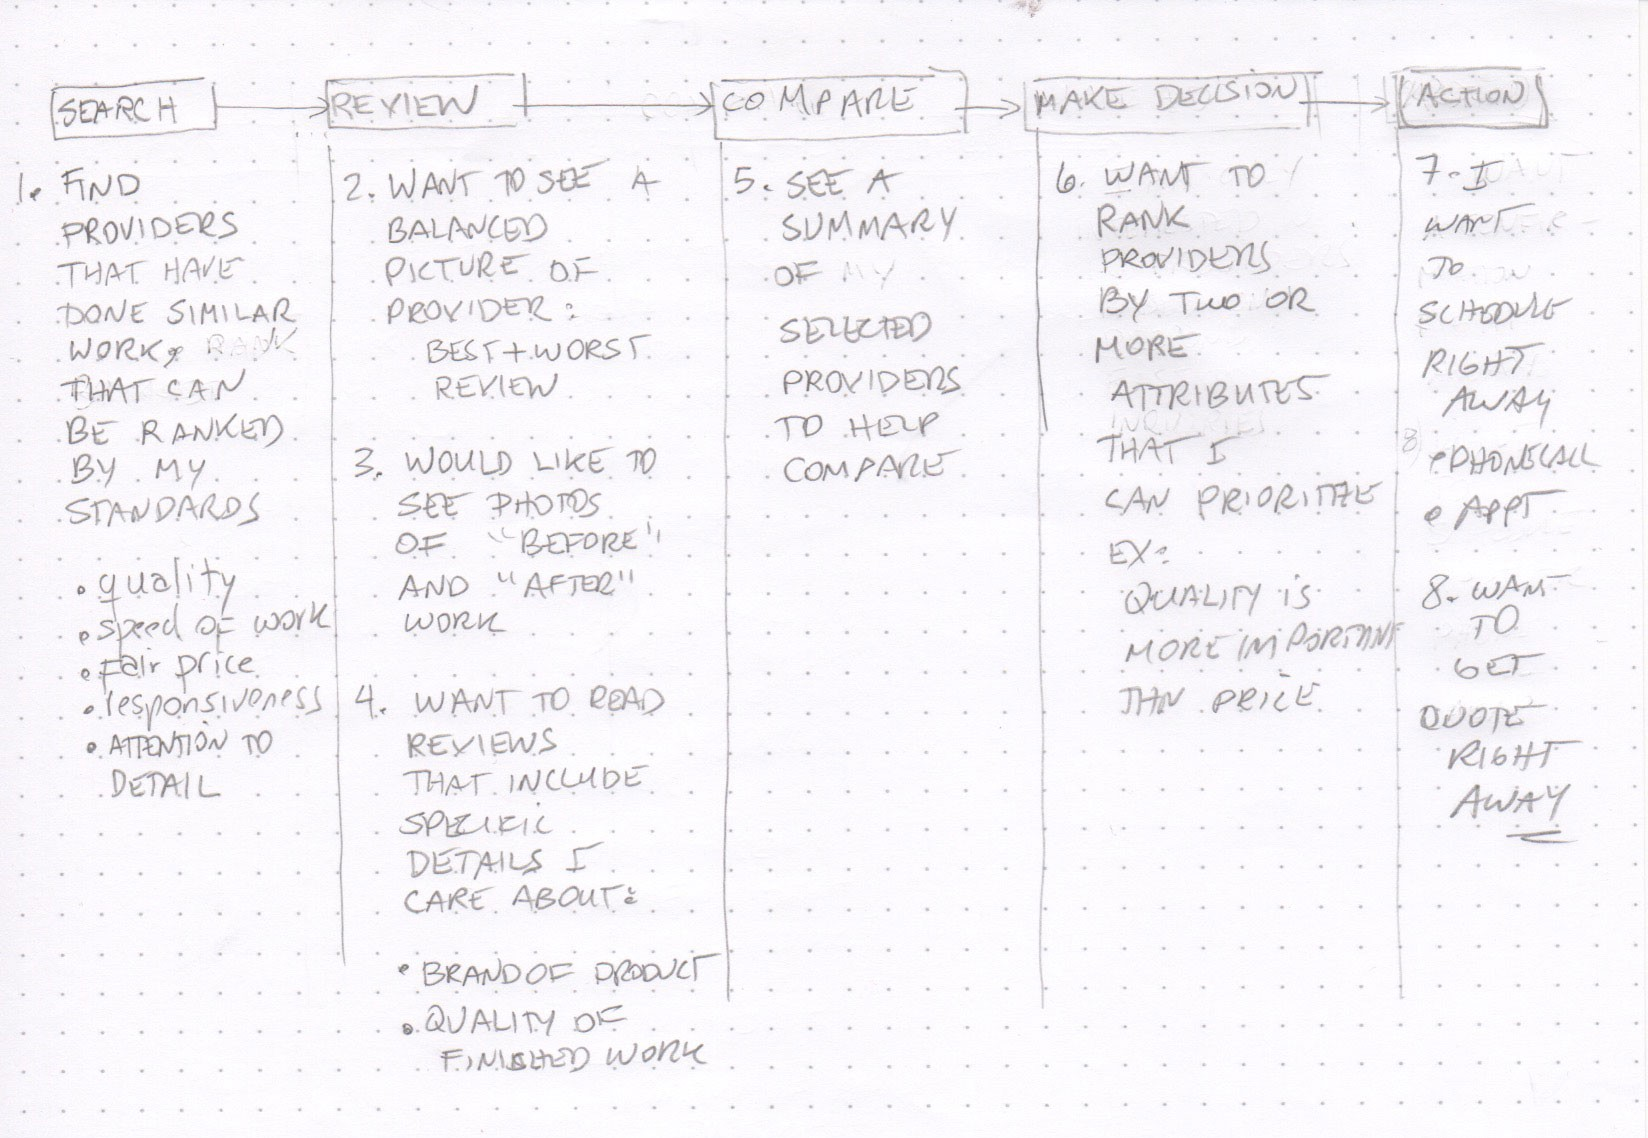 User journey map with use cases at each stage